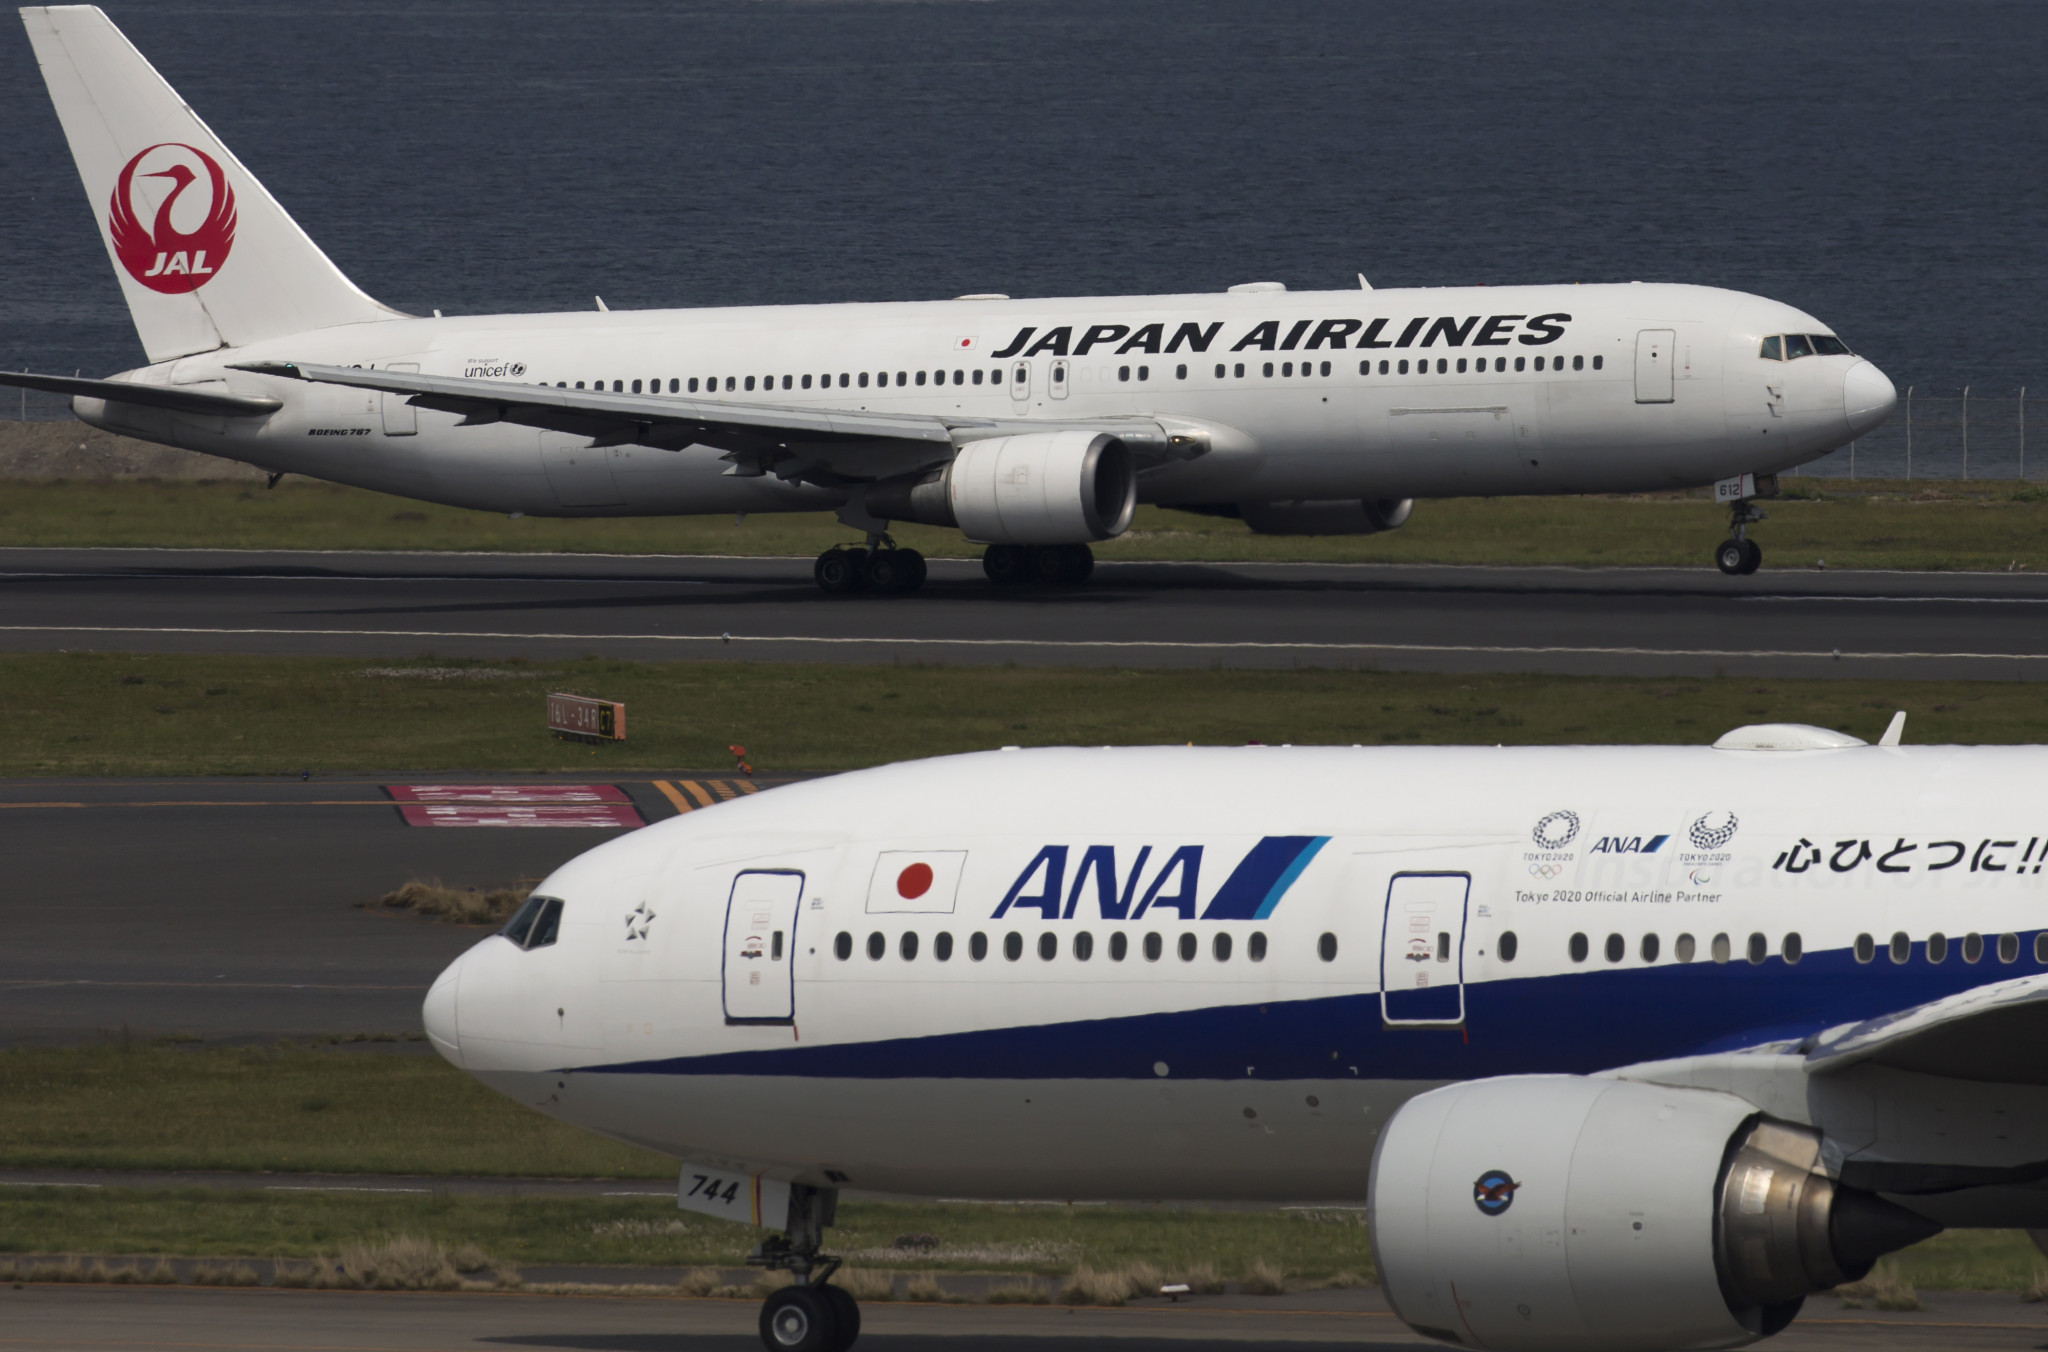 Tokyo 2020 has announced today that it has concluded an agreement with All Nippon Airways and Japan Airlines under which they will serve as supporting partners of the Olympic Torch Relay ©Getty Images